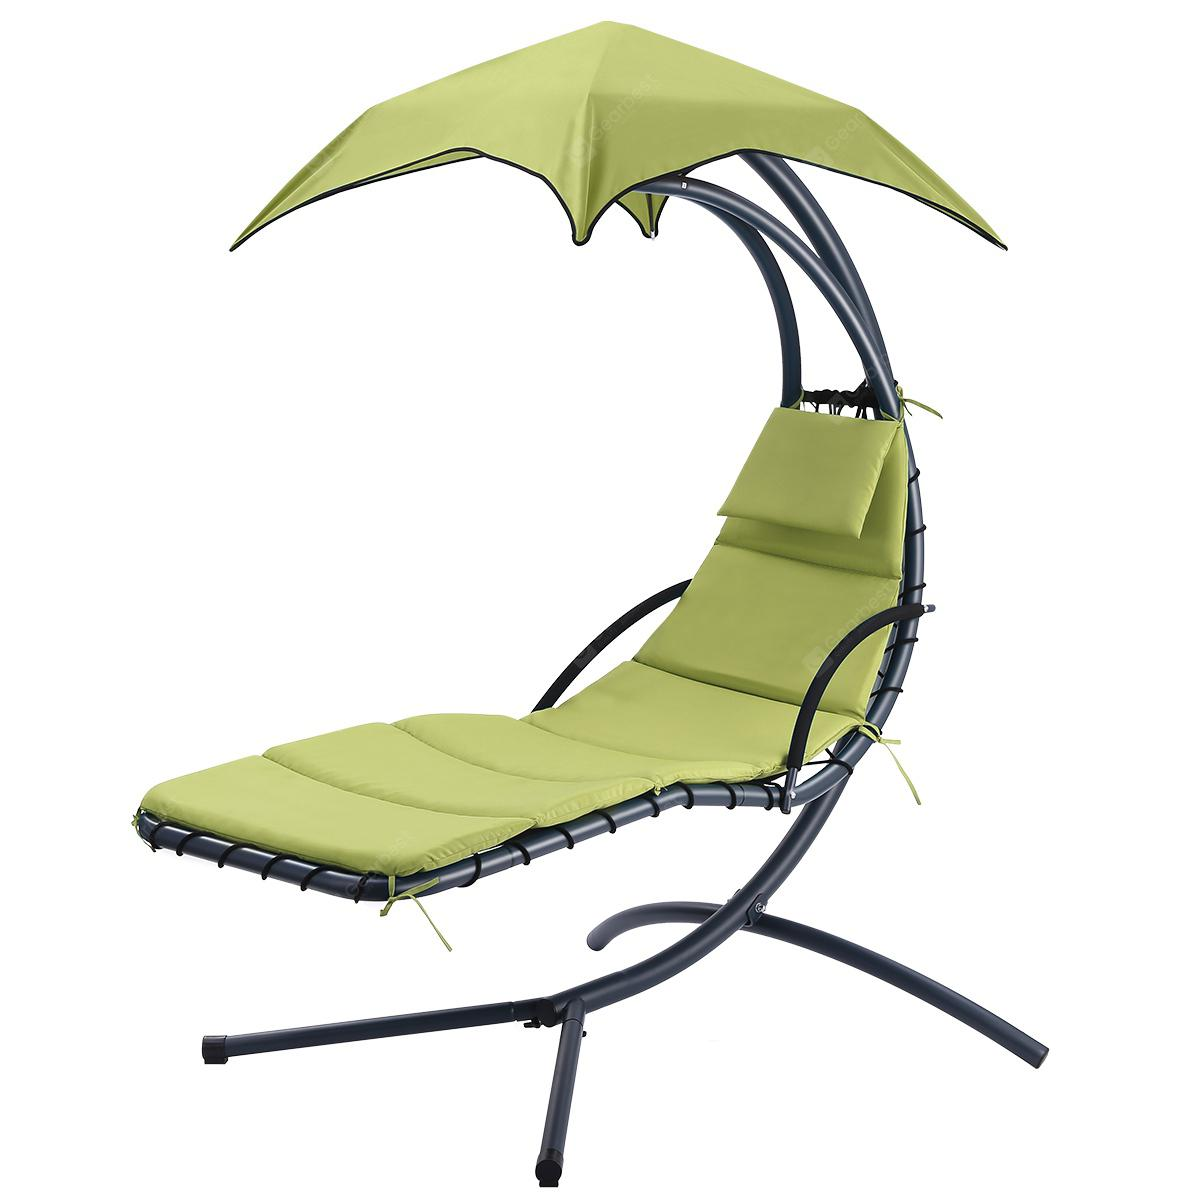 Hanging Chaise Lounge Chair Outdoor Indoor Hammock Chair Swing For Patio Beach Yard Light Green